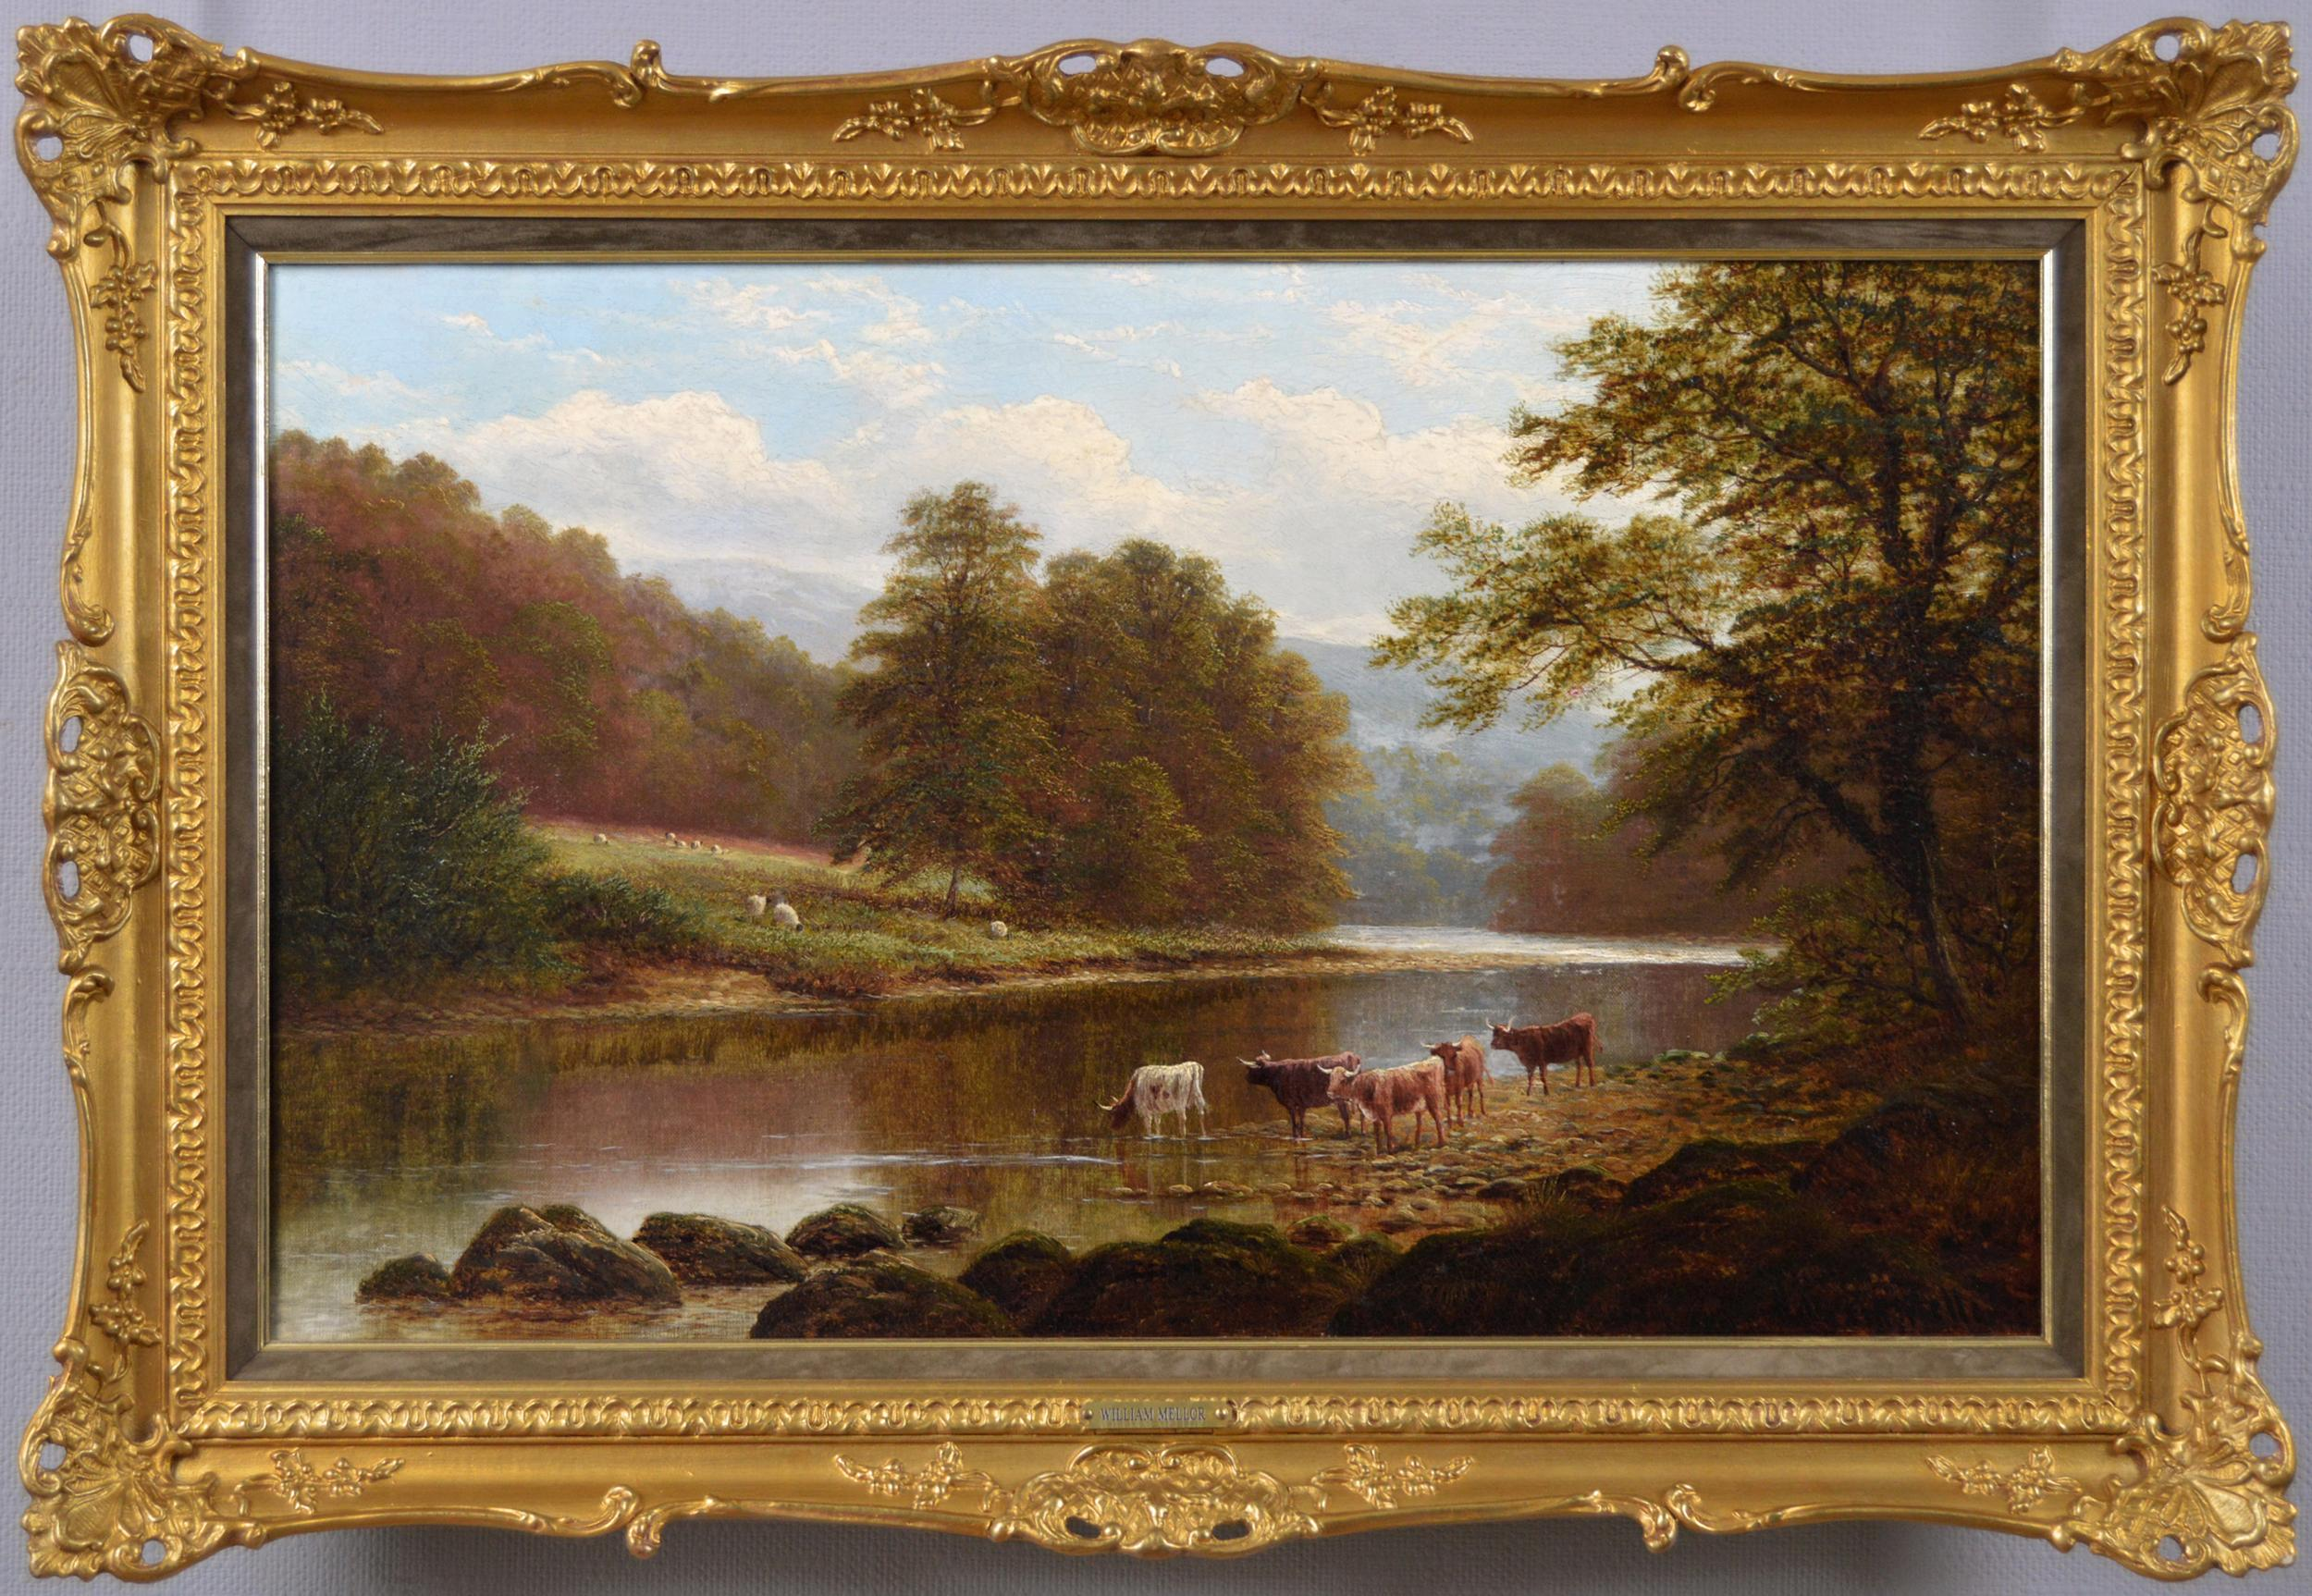 19th Century landscape oil painting of cattle near a river